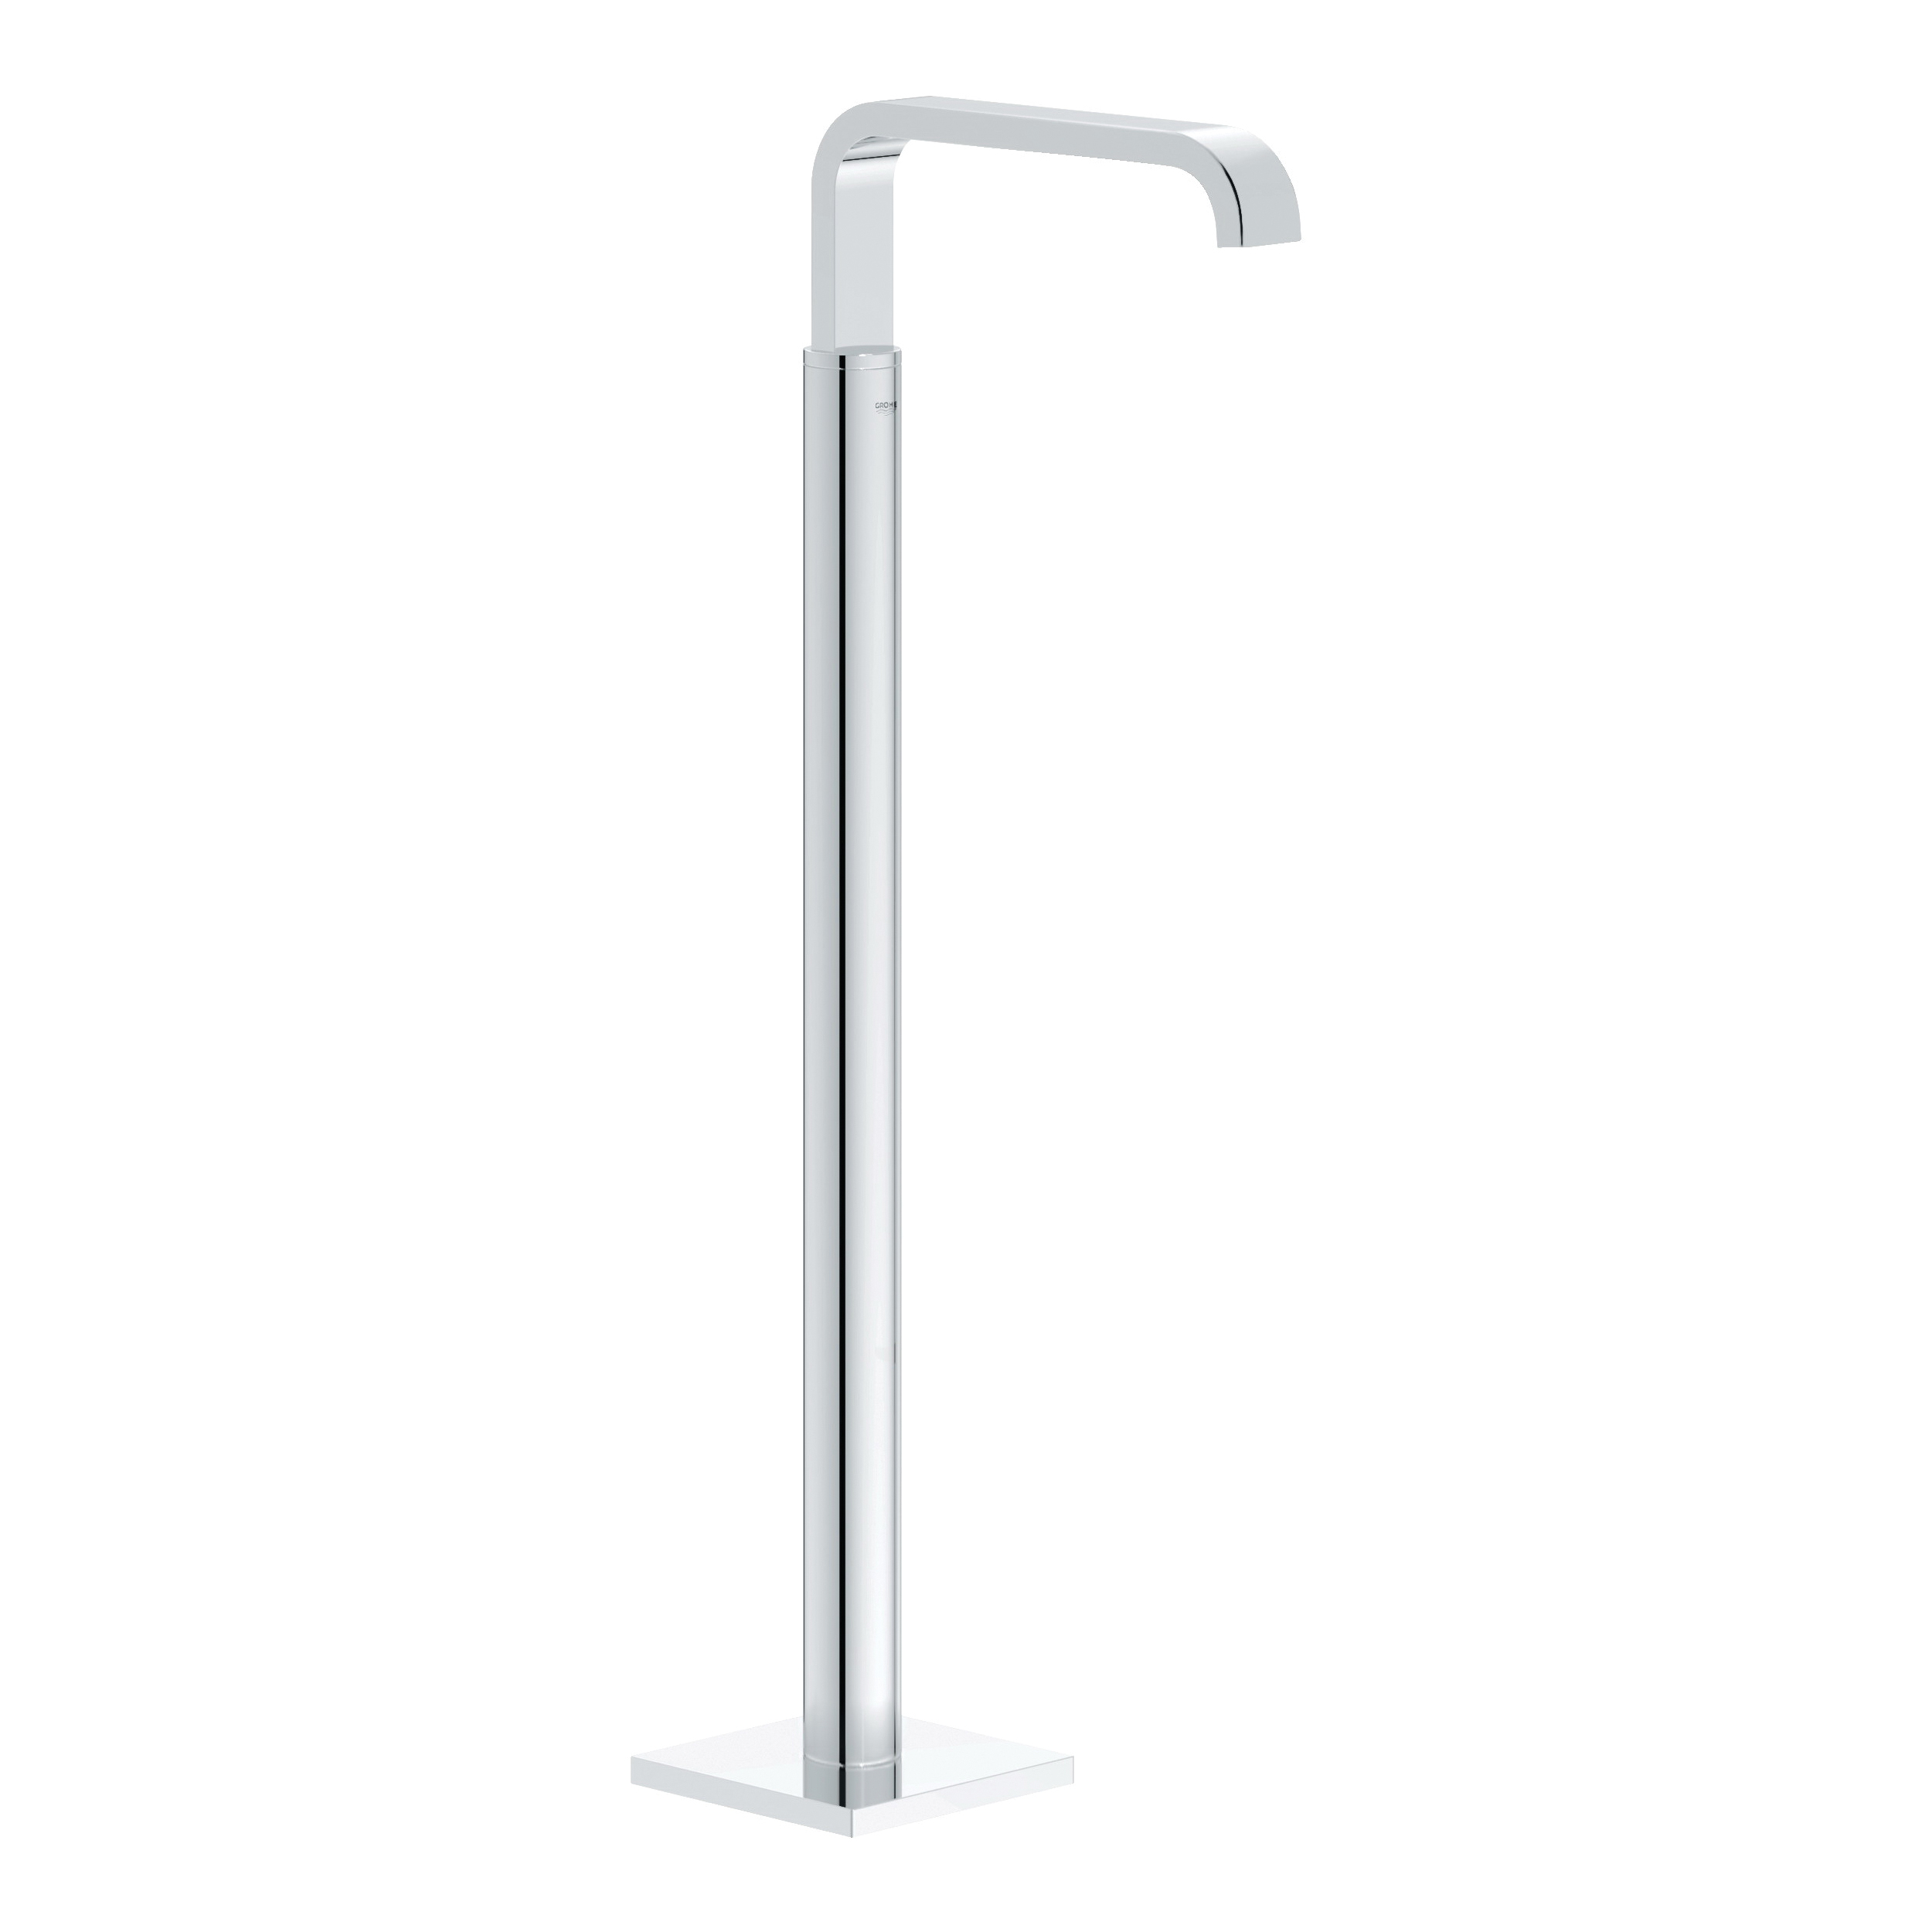 GROHE 13218000 Allure Tub Filler, 7 gpm, StarLight® Chrome Plated, Hand Shower Yes/No: No, Import